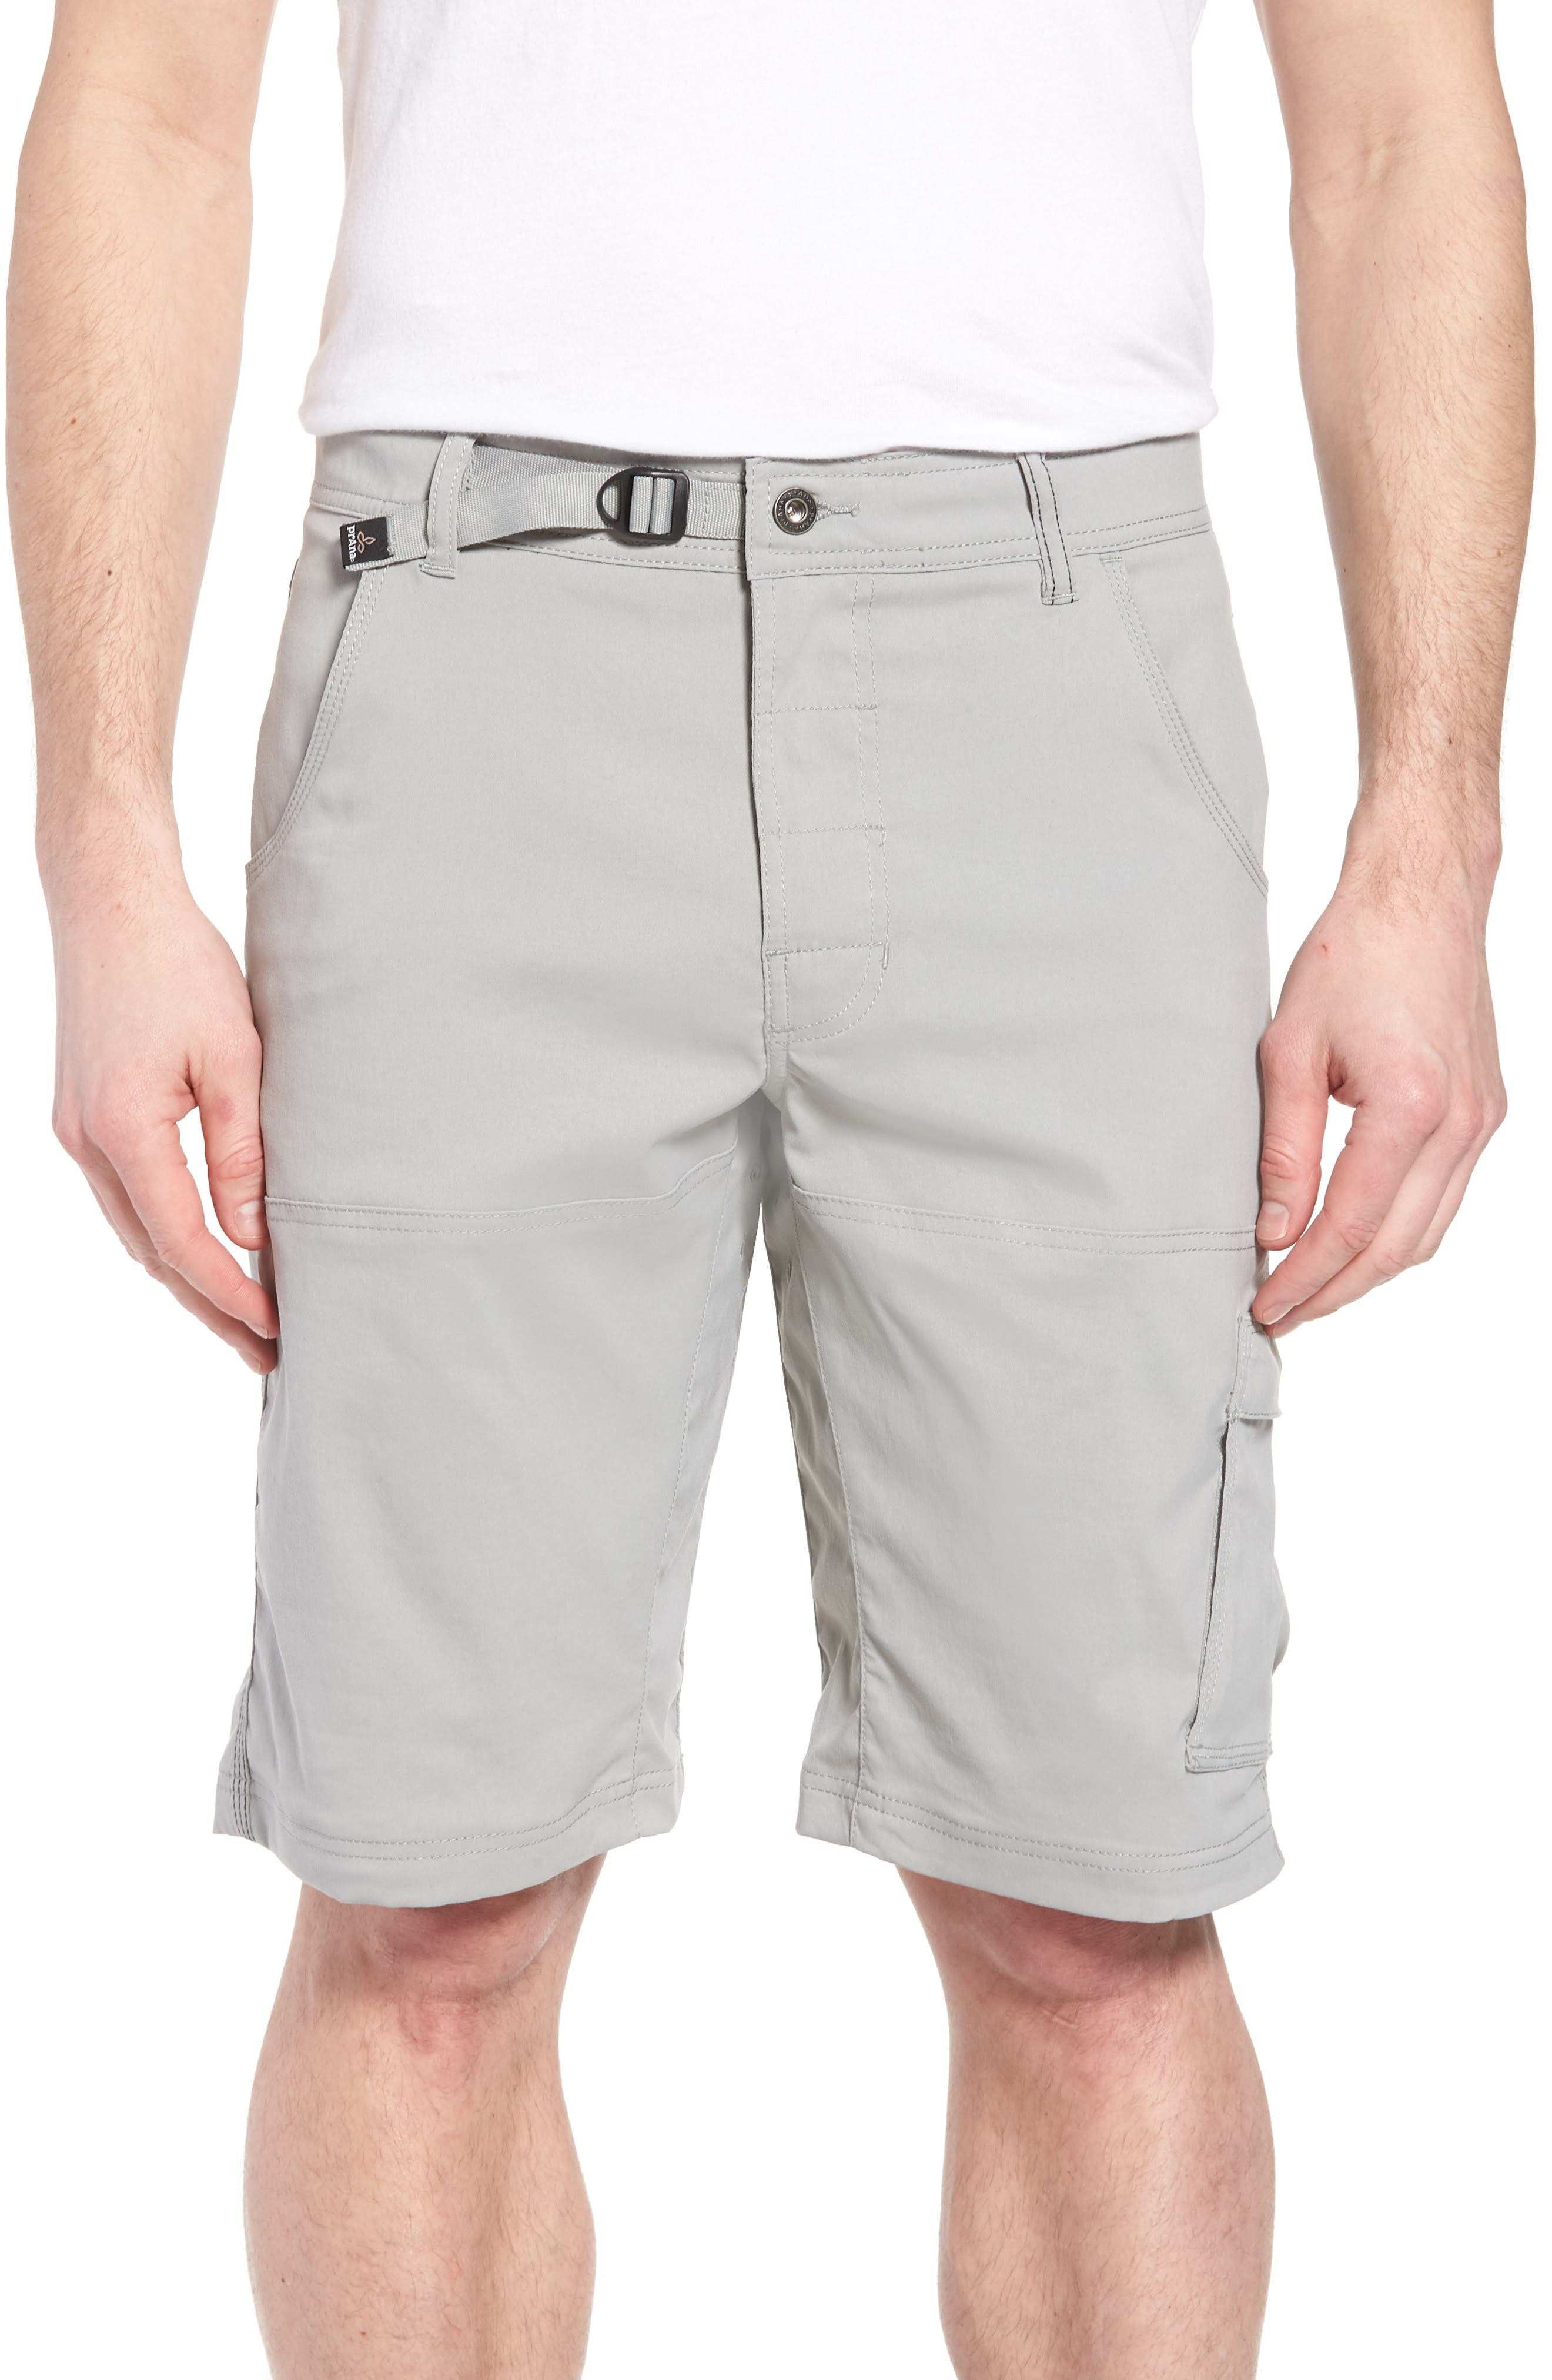 Zion Stretch Shorts,                         Main,                         color, 020